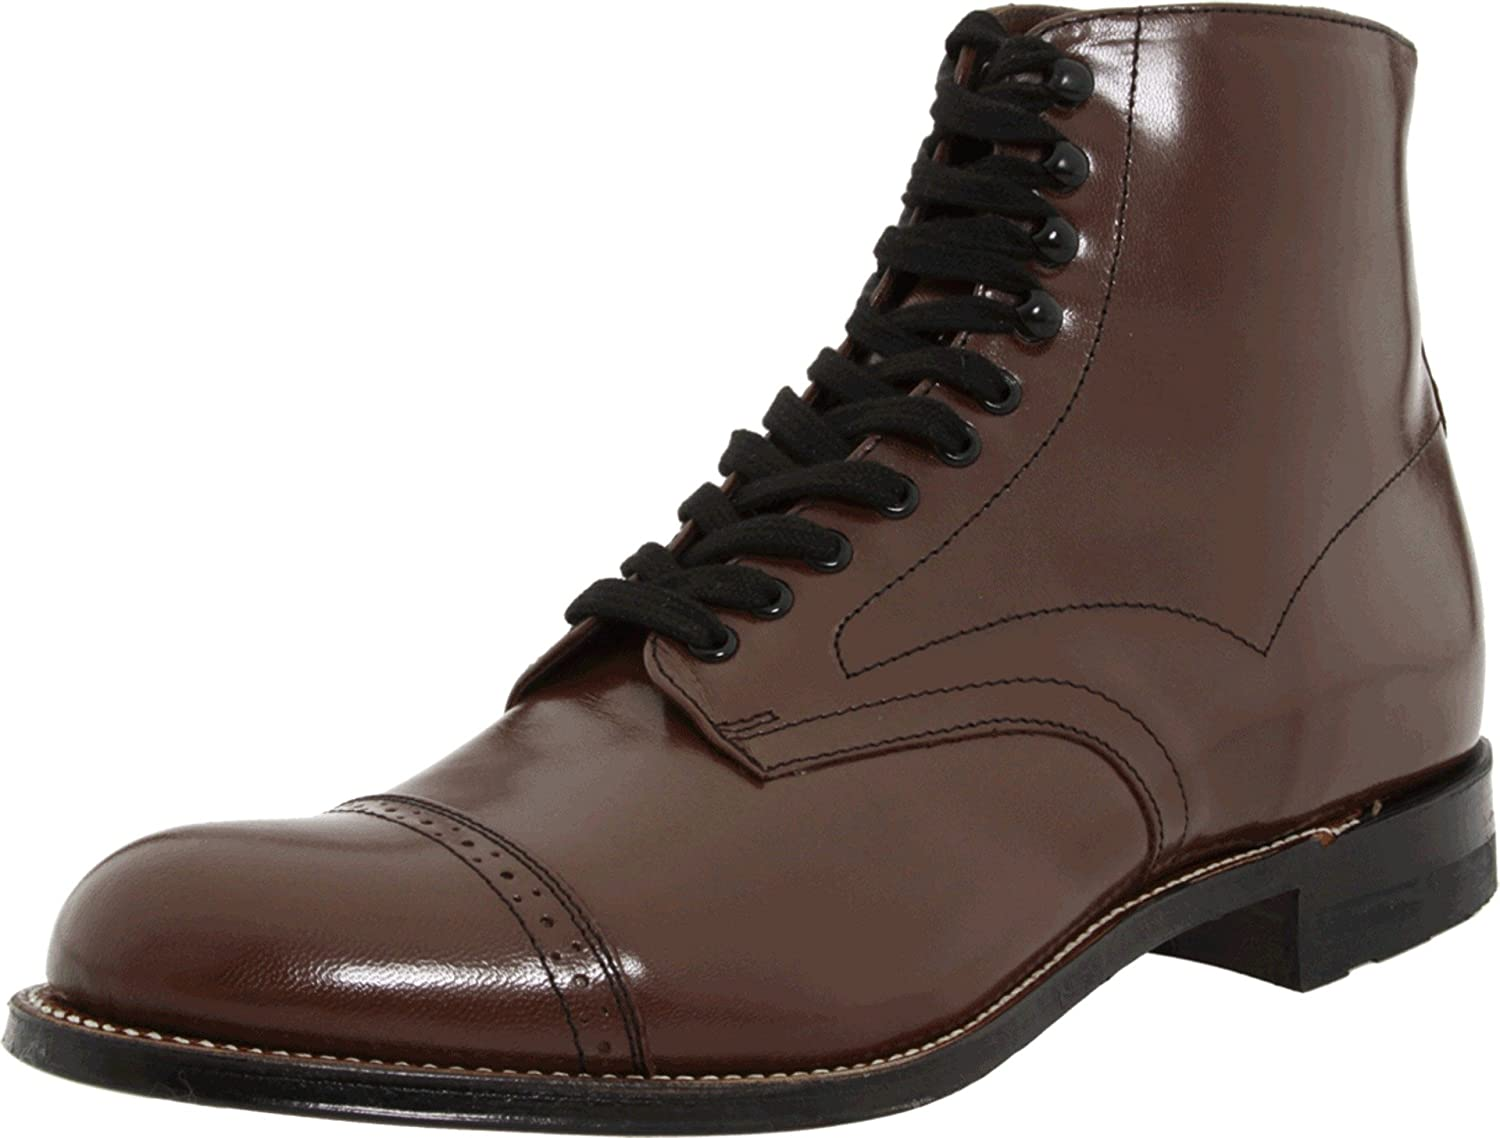 Steampunk Boots and Shoes for Men UK Stacy Adams Mens Madison Cap Toe Boot £96.11 AT vintagedancer.com